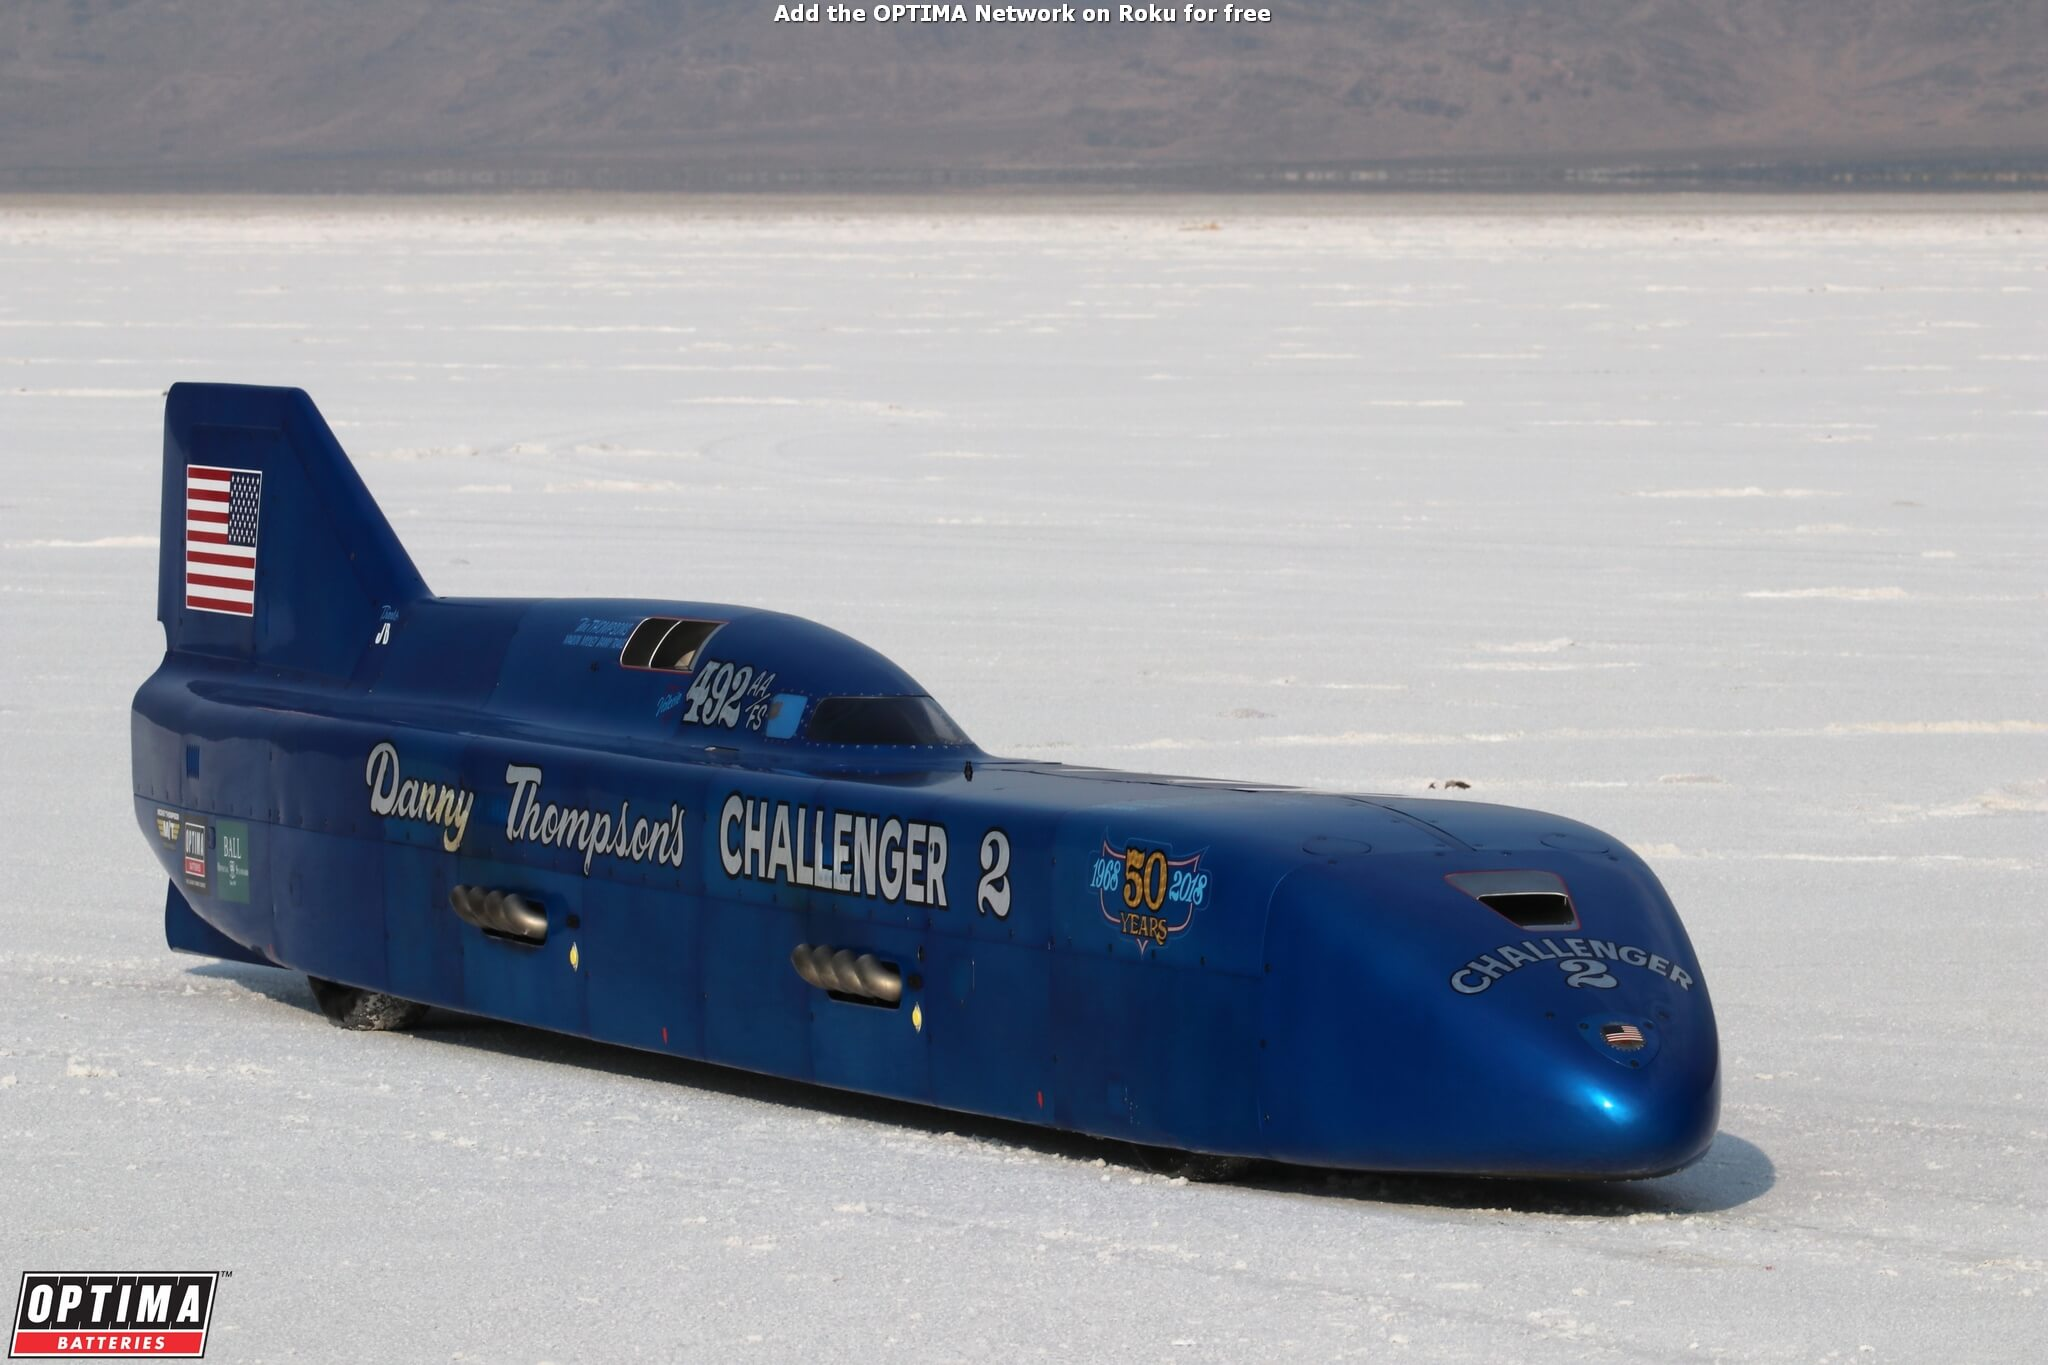 Danny-Thompson-Challenger-2-Streamliner-Bonneville-Speedweek-2018_492